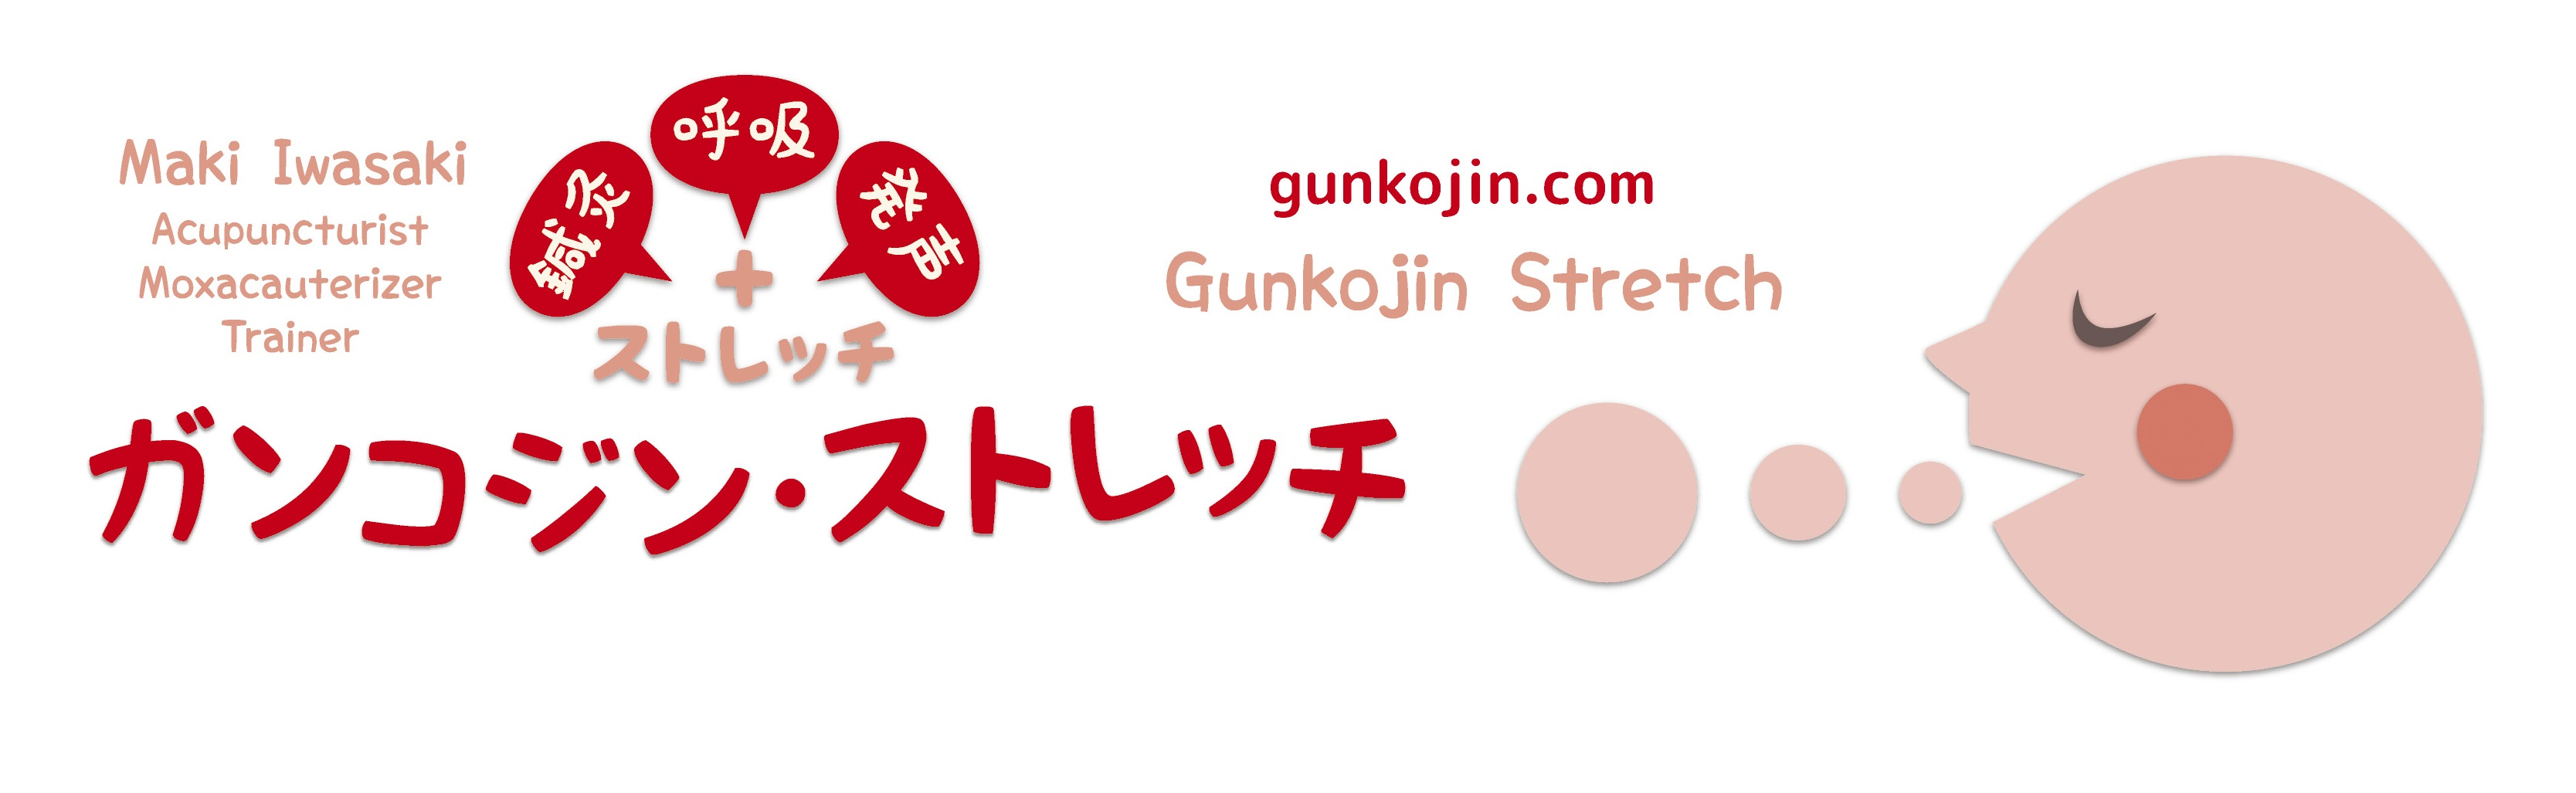 Gunkojin Stretch